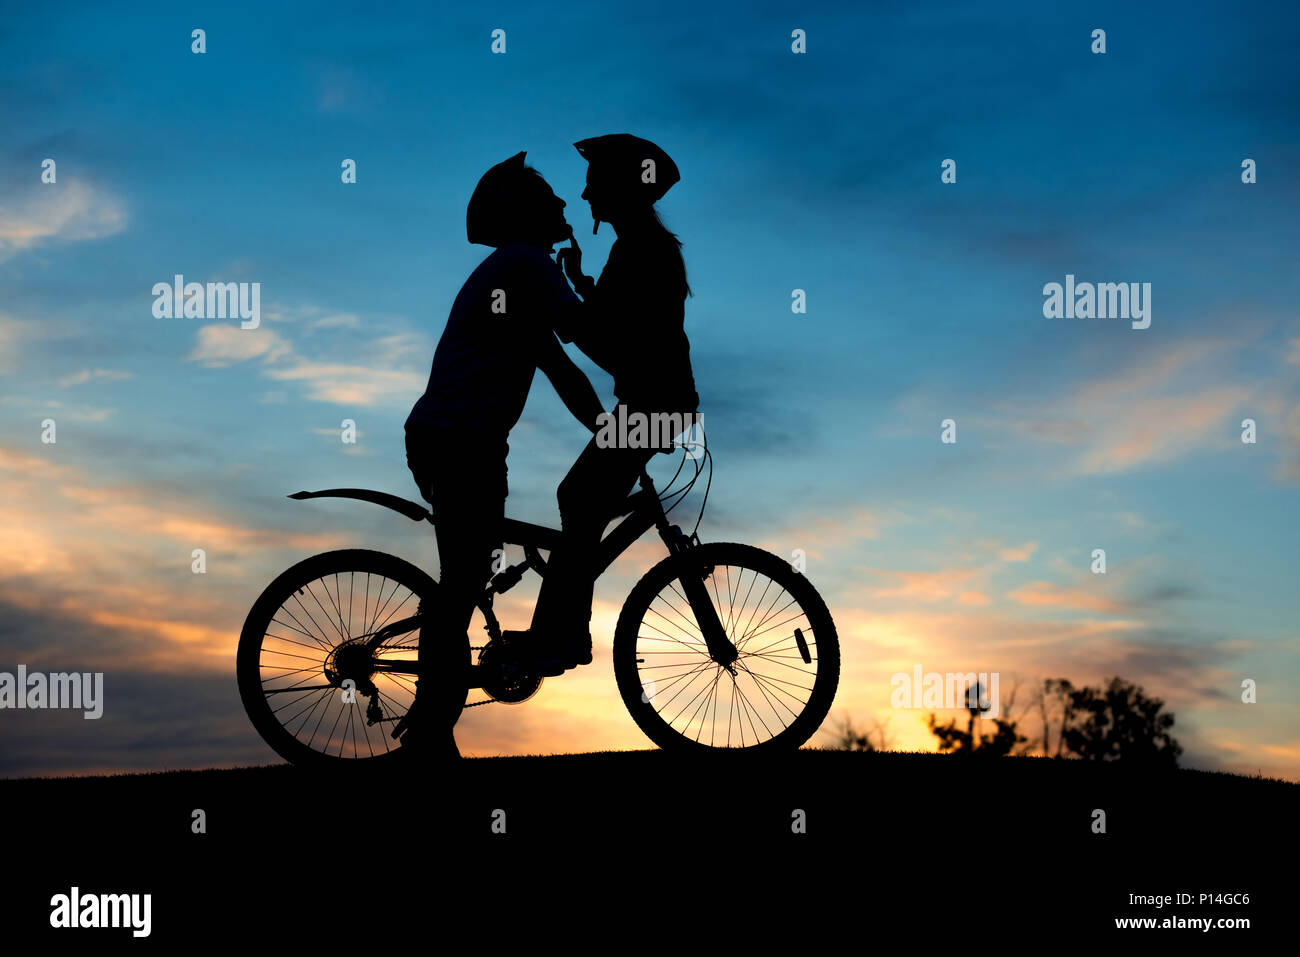 Couple kissing on the top of hill at sunset. Silhouette of bicyclists is kissing on summer nature background with beautiful clouds in the sky. Romanti - Stock Image